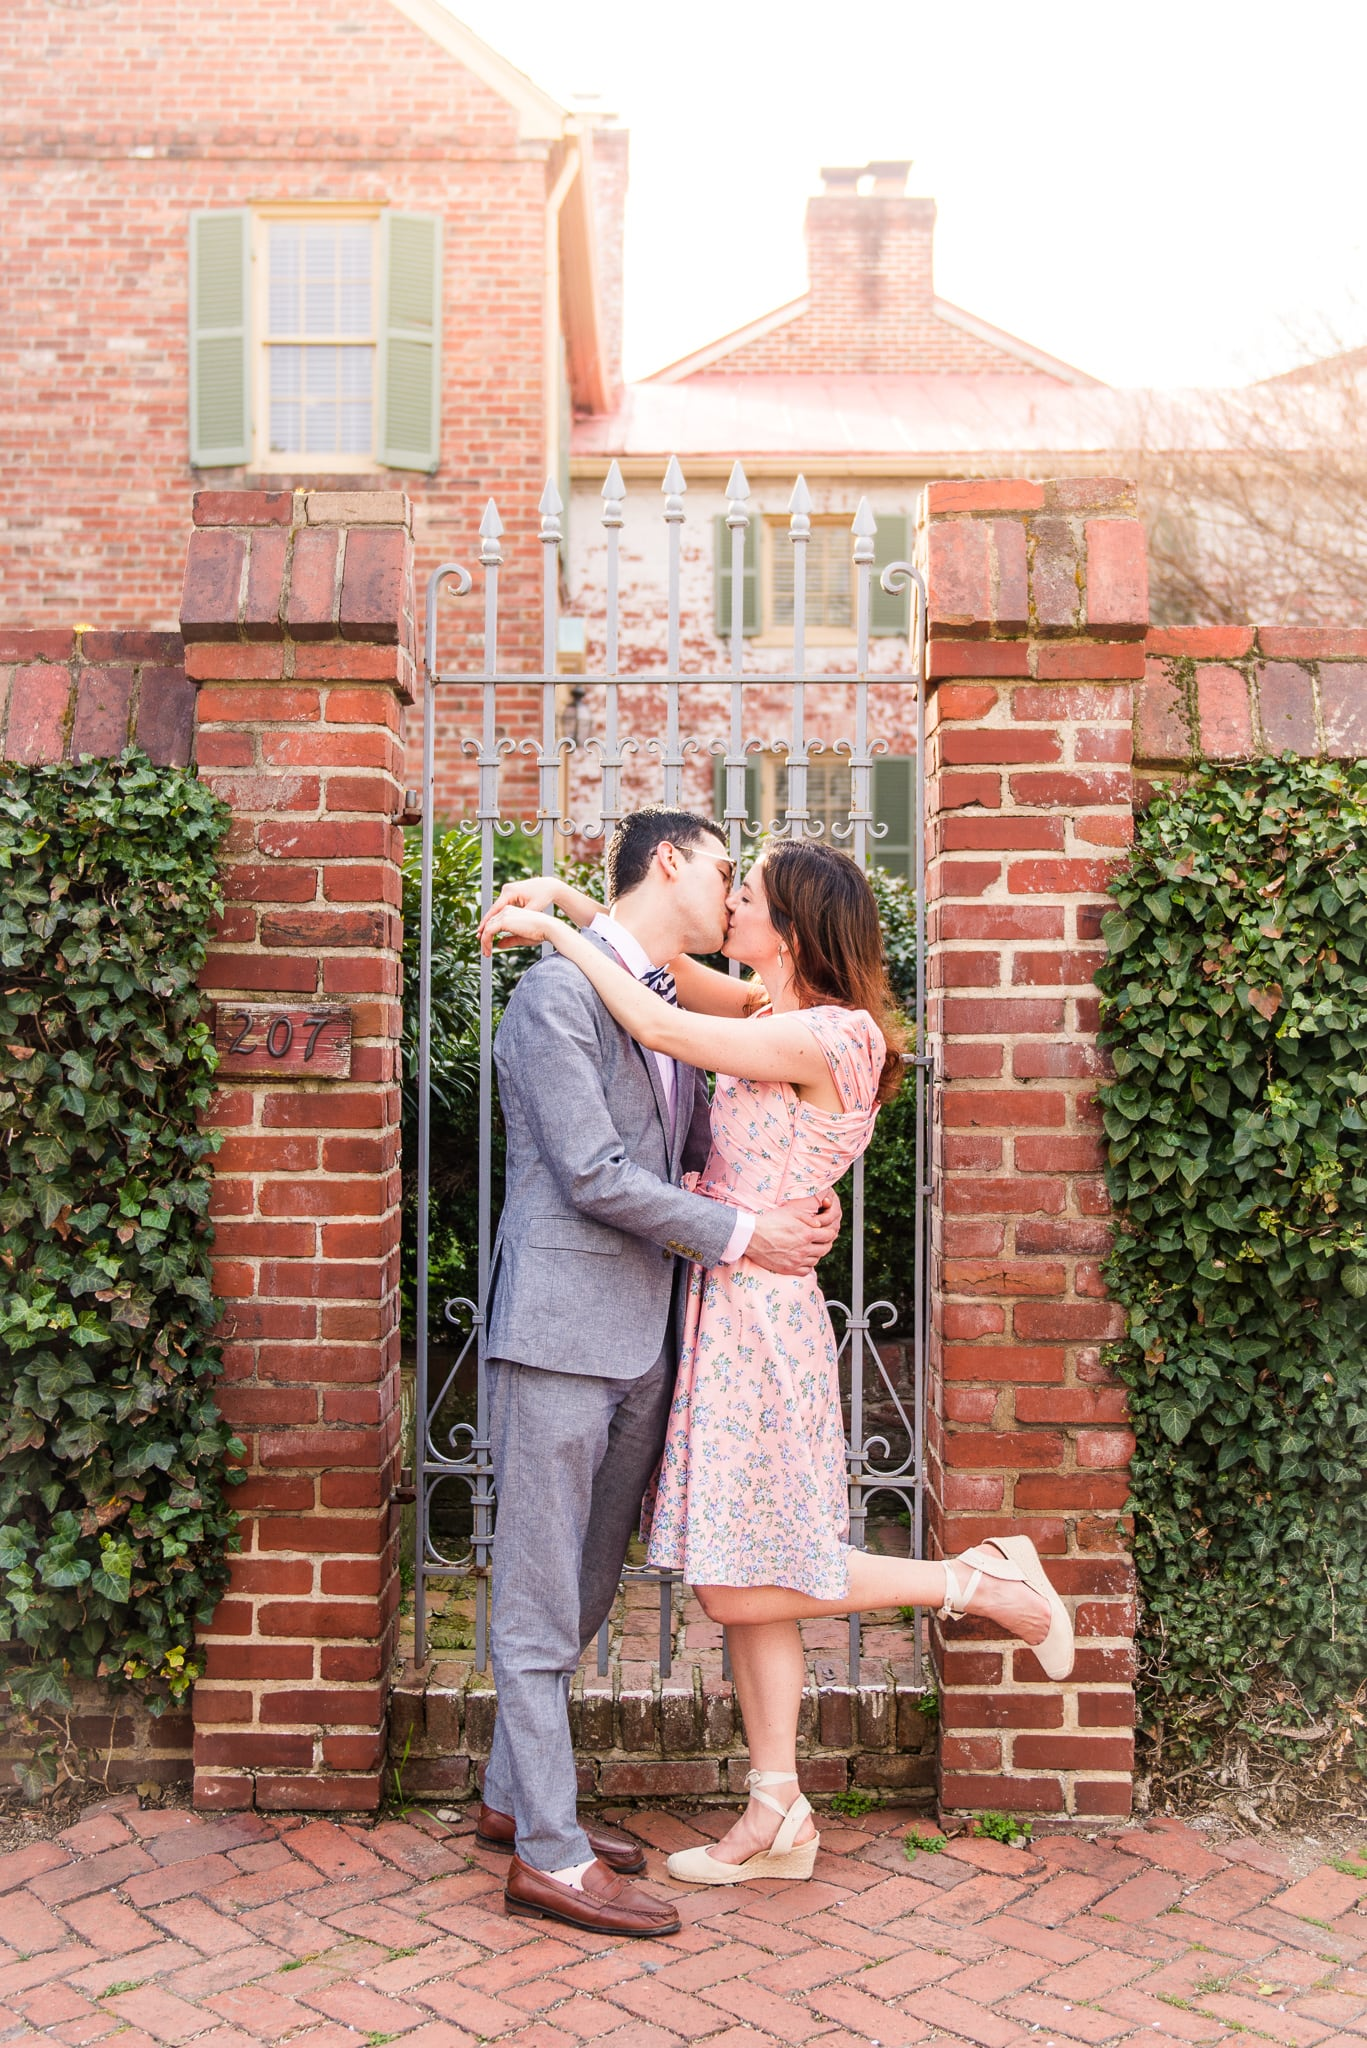 An engaged couple shares a kiss in front of a gate during their engagement session in Old Town Alexandria